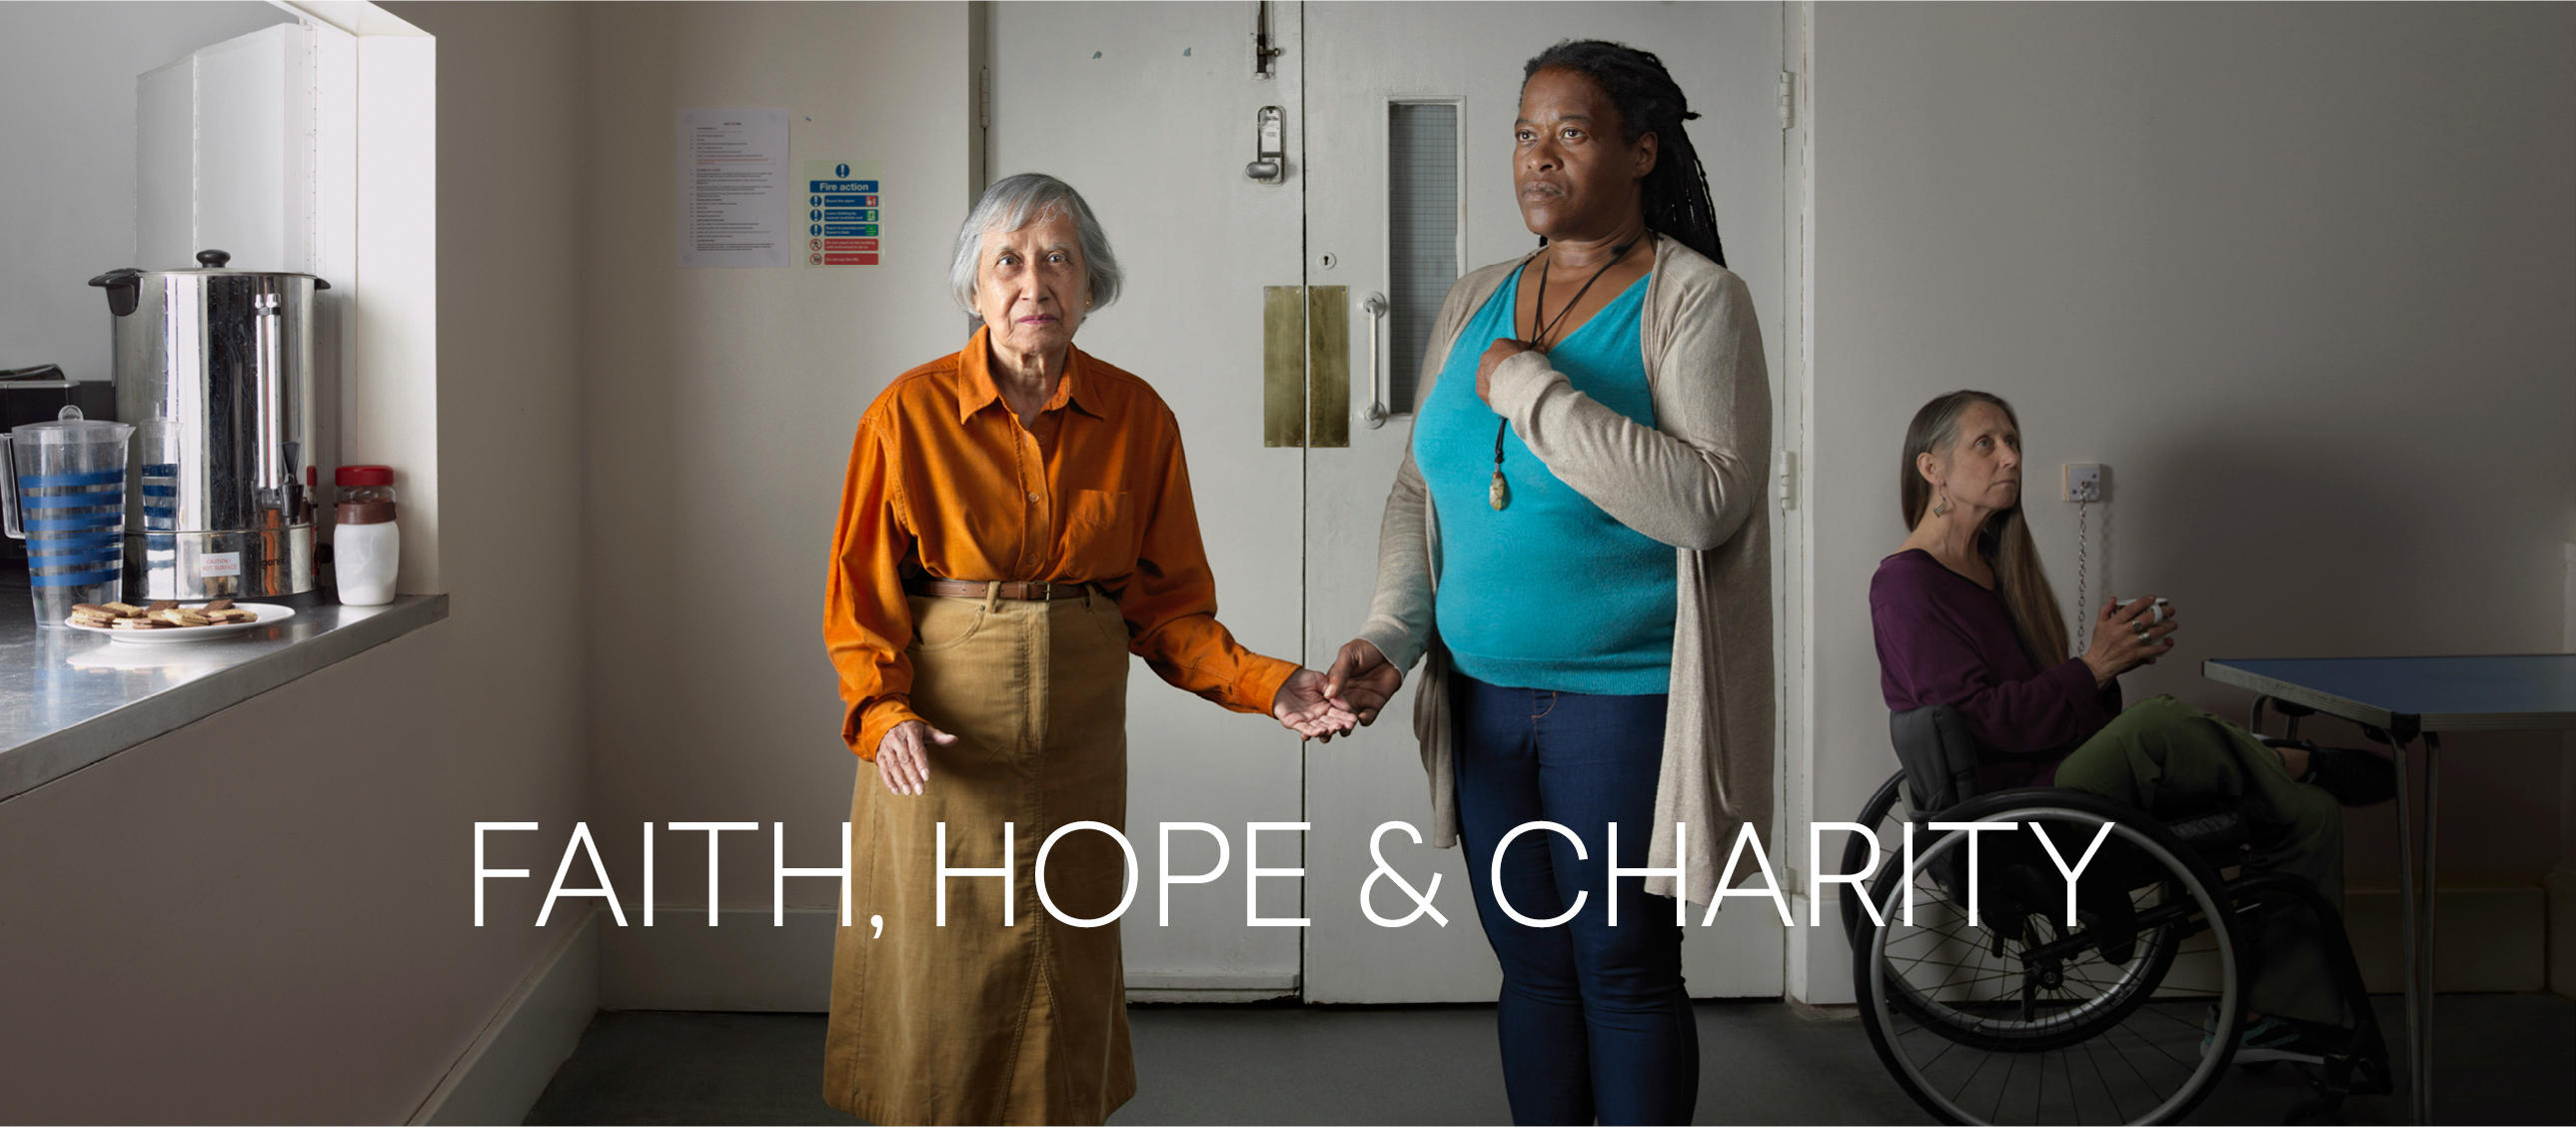 Faith, Hope and Charity poster: photo of three characters in a bare room with fire exit